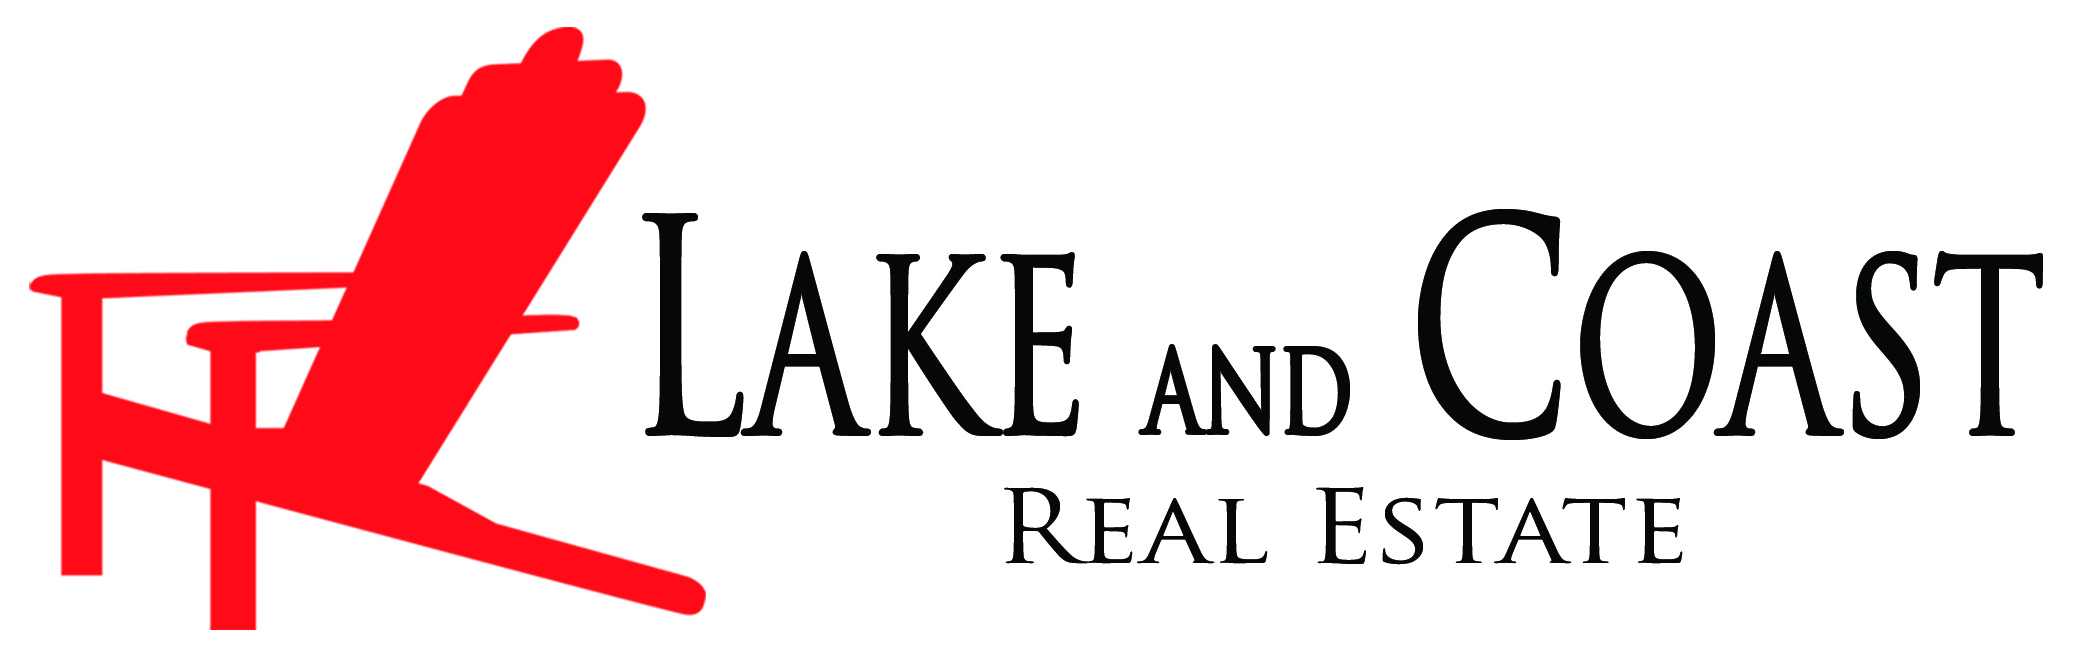 Lake And Coast Real Estate